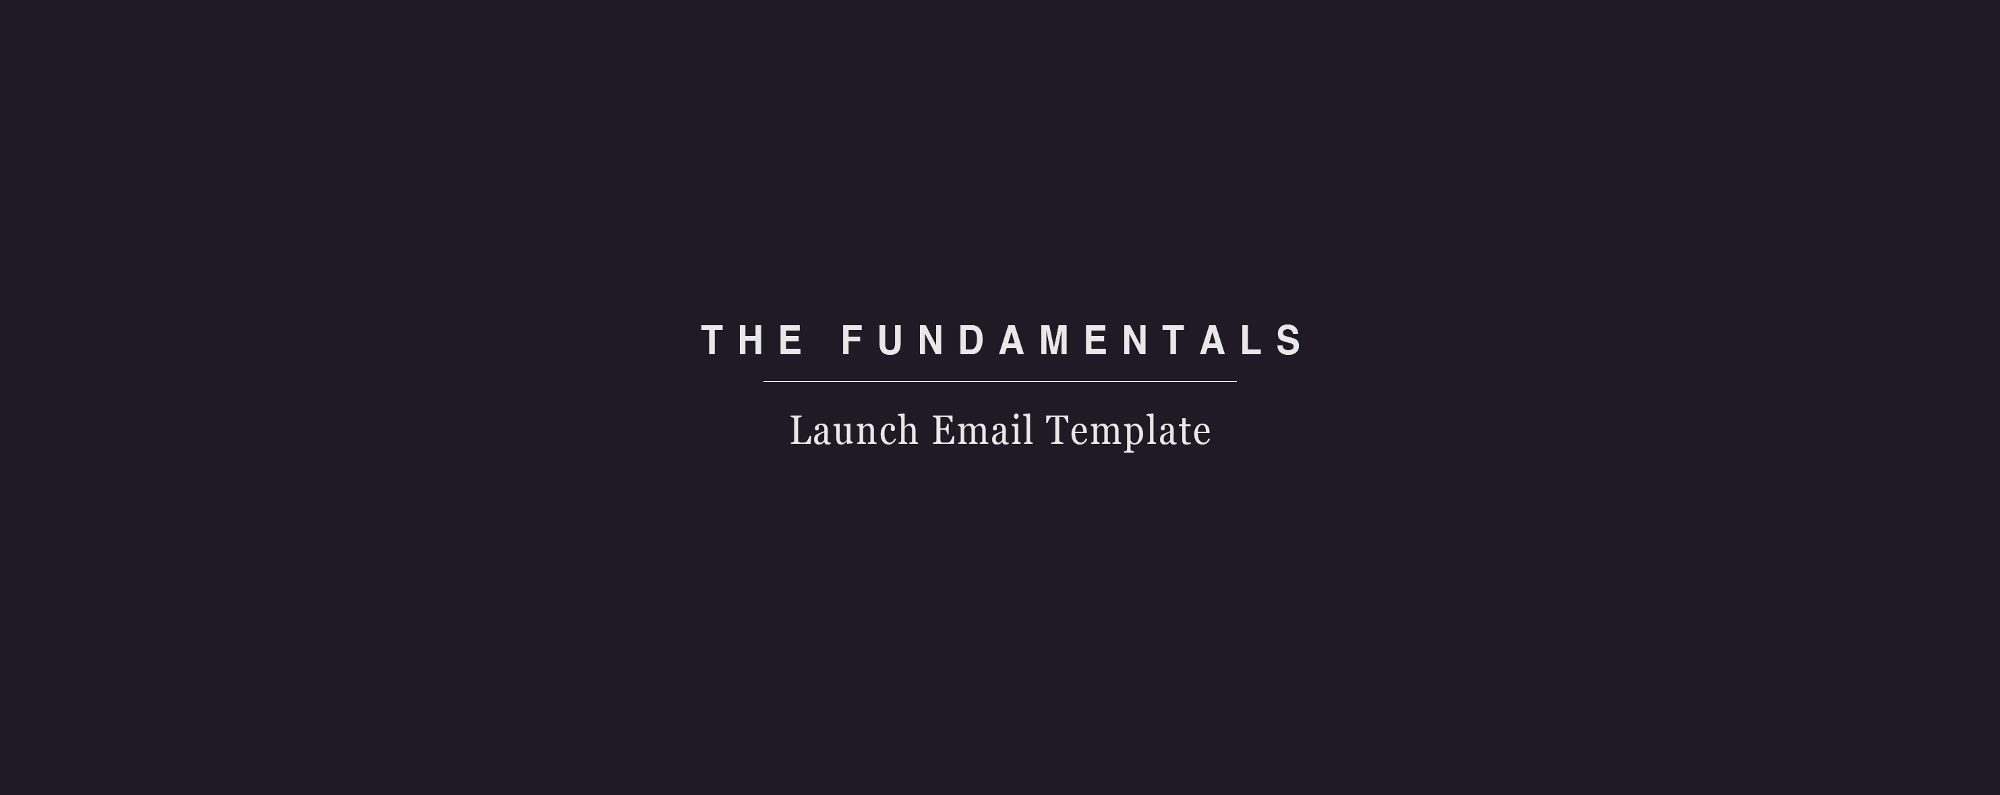 Product Launch Email Template – The Fundamentals – Medium